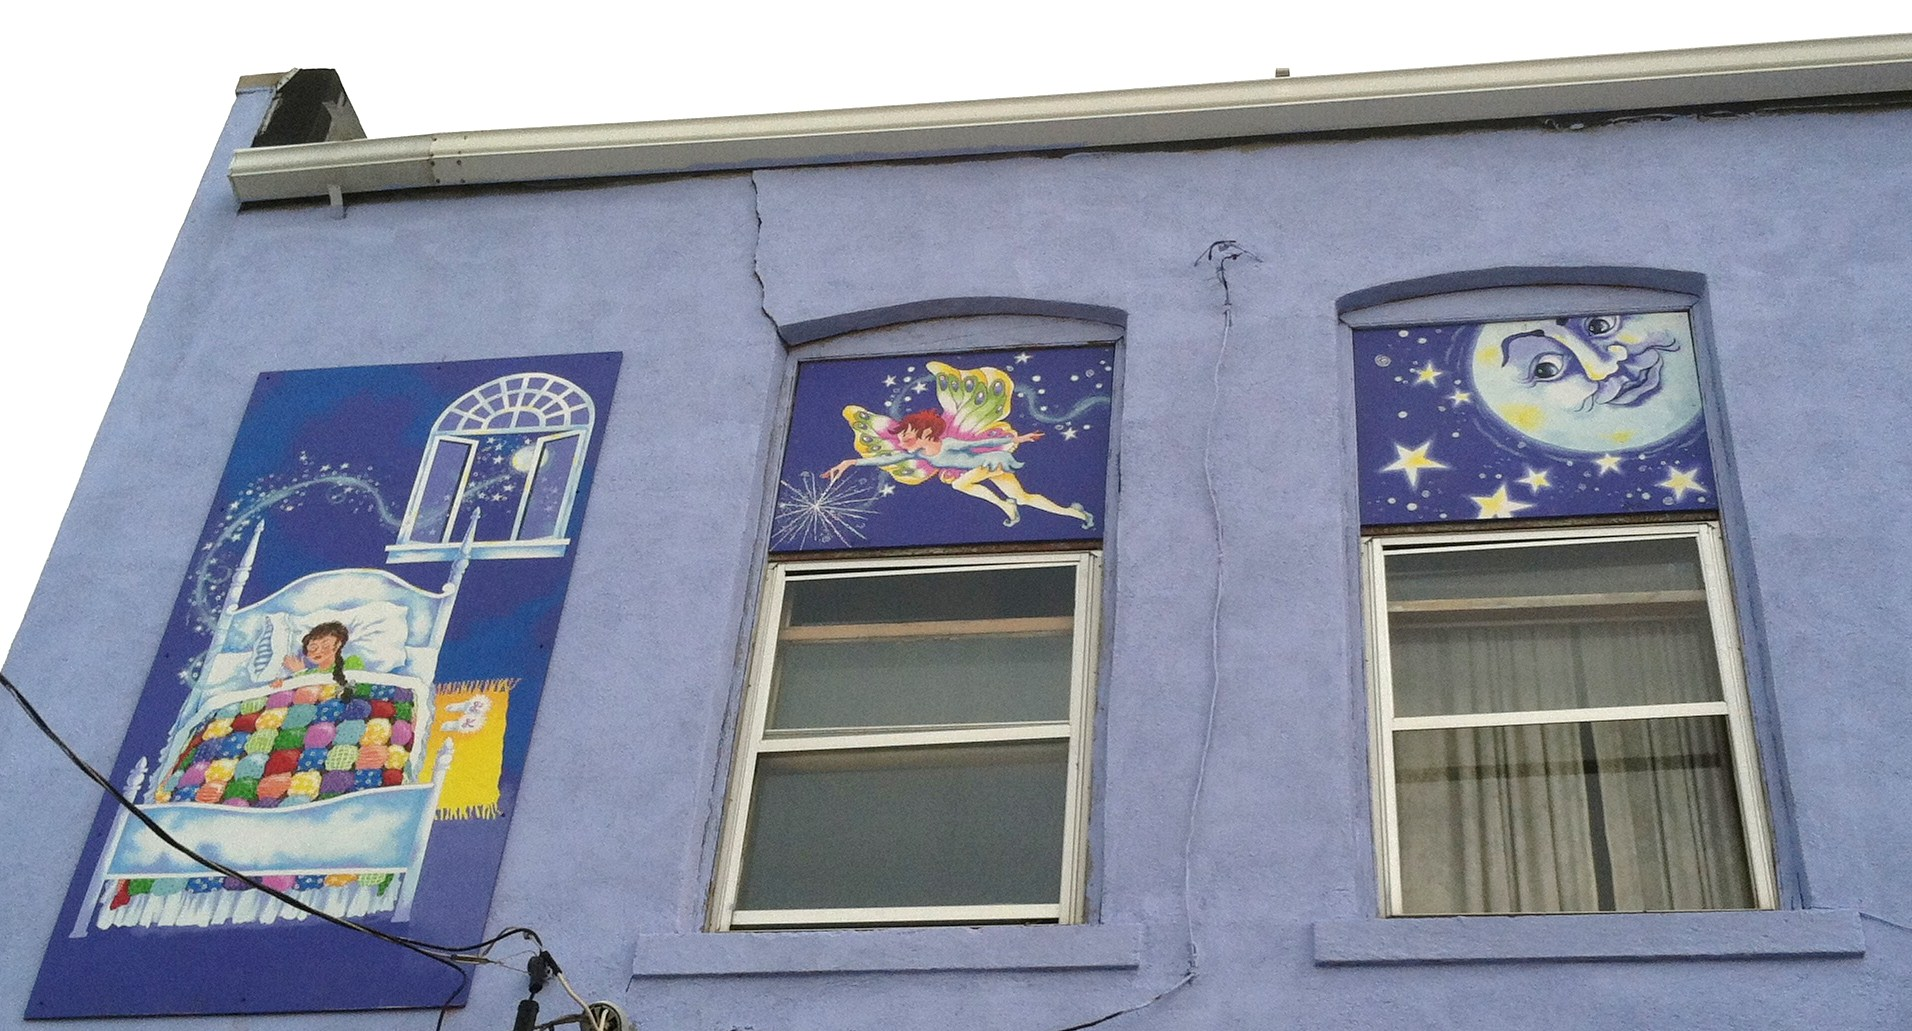 Mural on the side of a building and above windows with a little girl sleeping in a bed, a tooth fairy holding a wand, and a moon with a face looking down